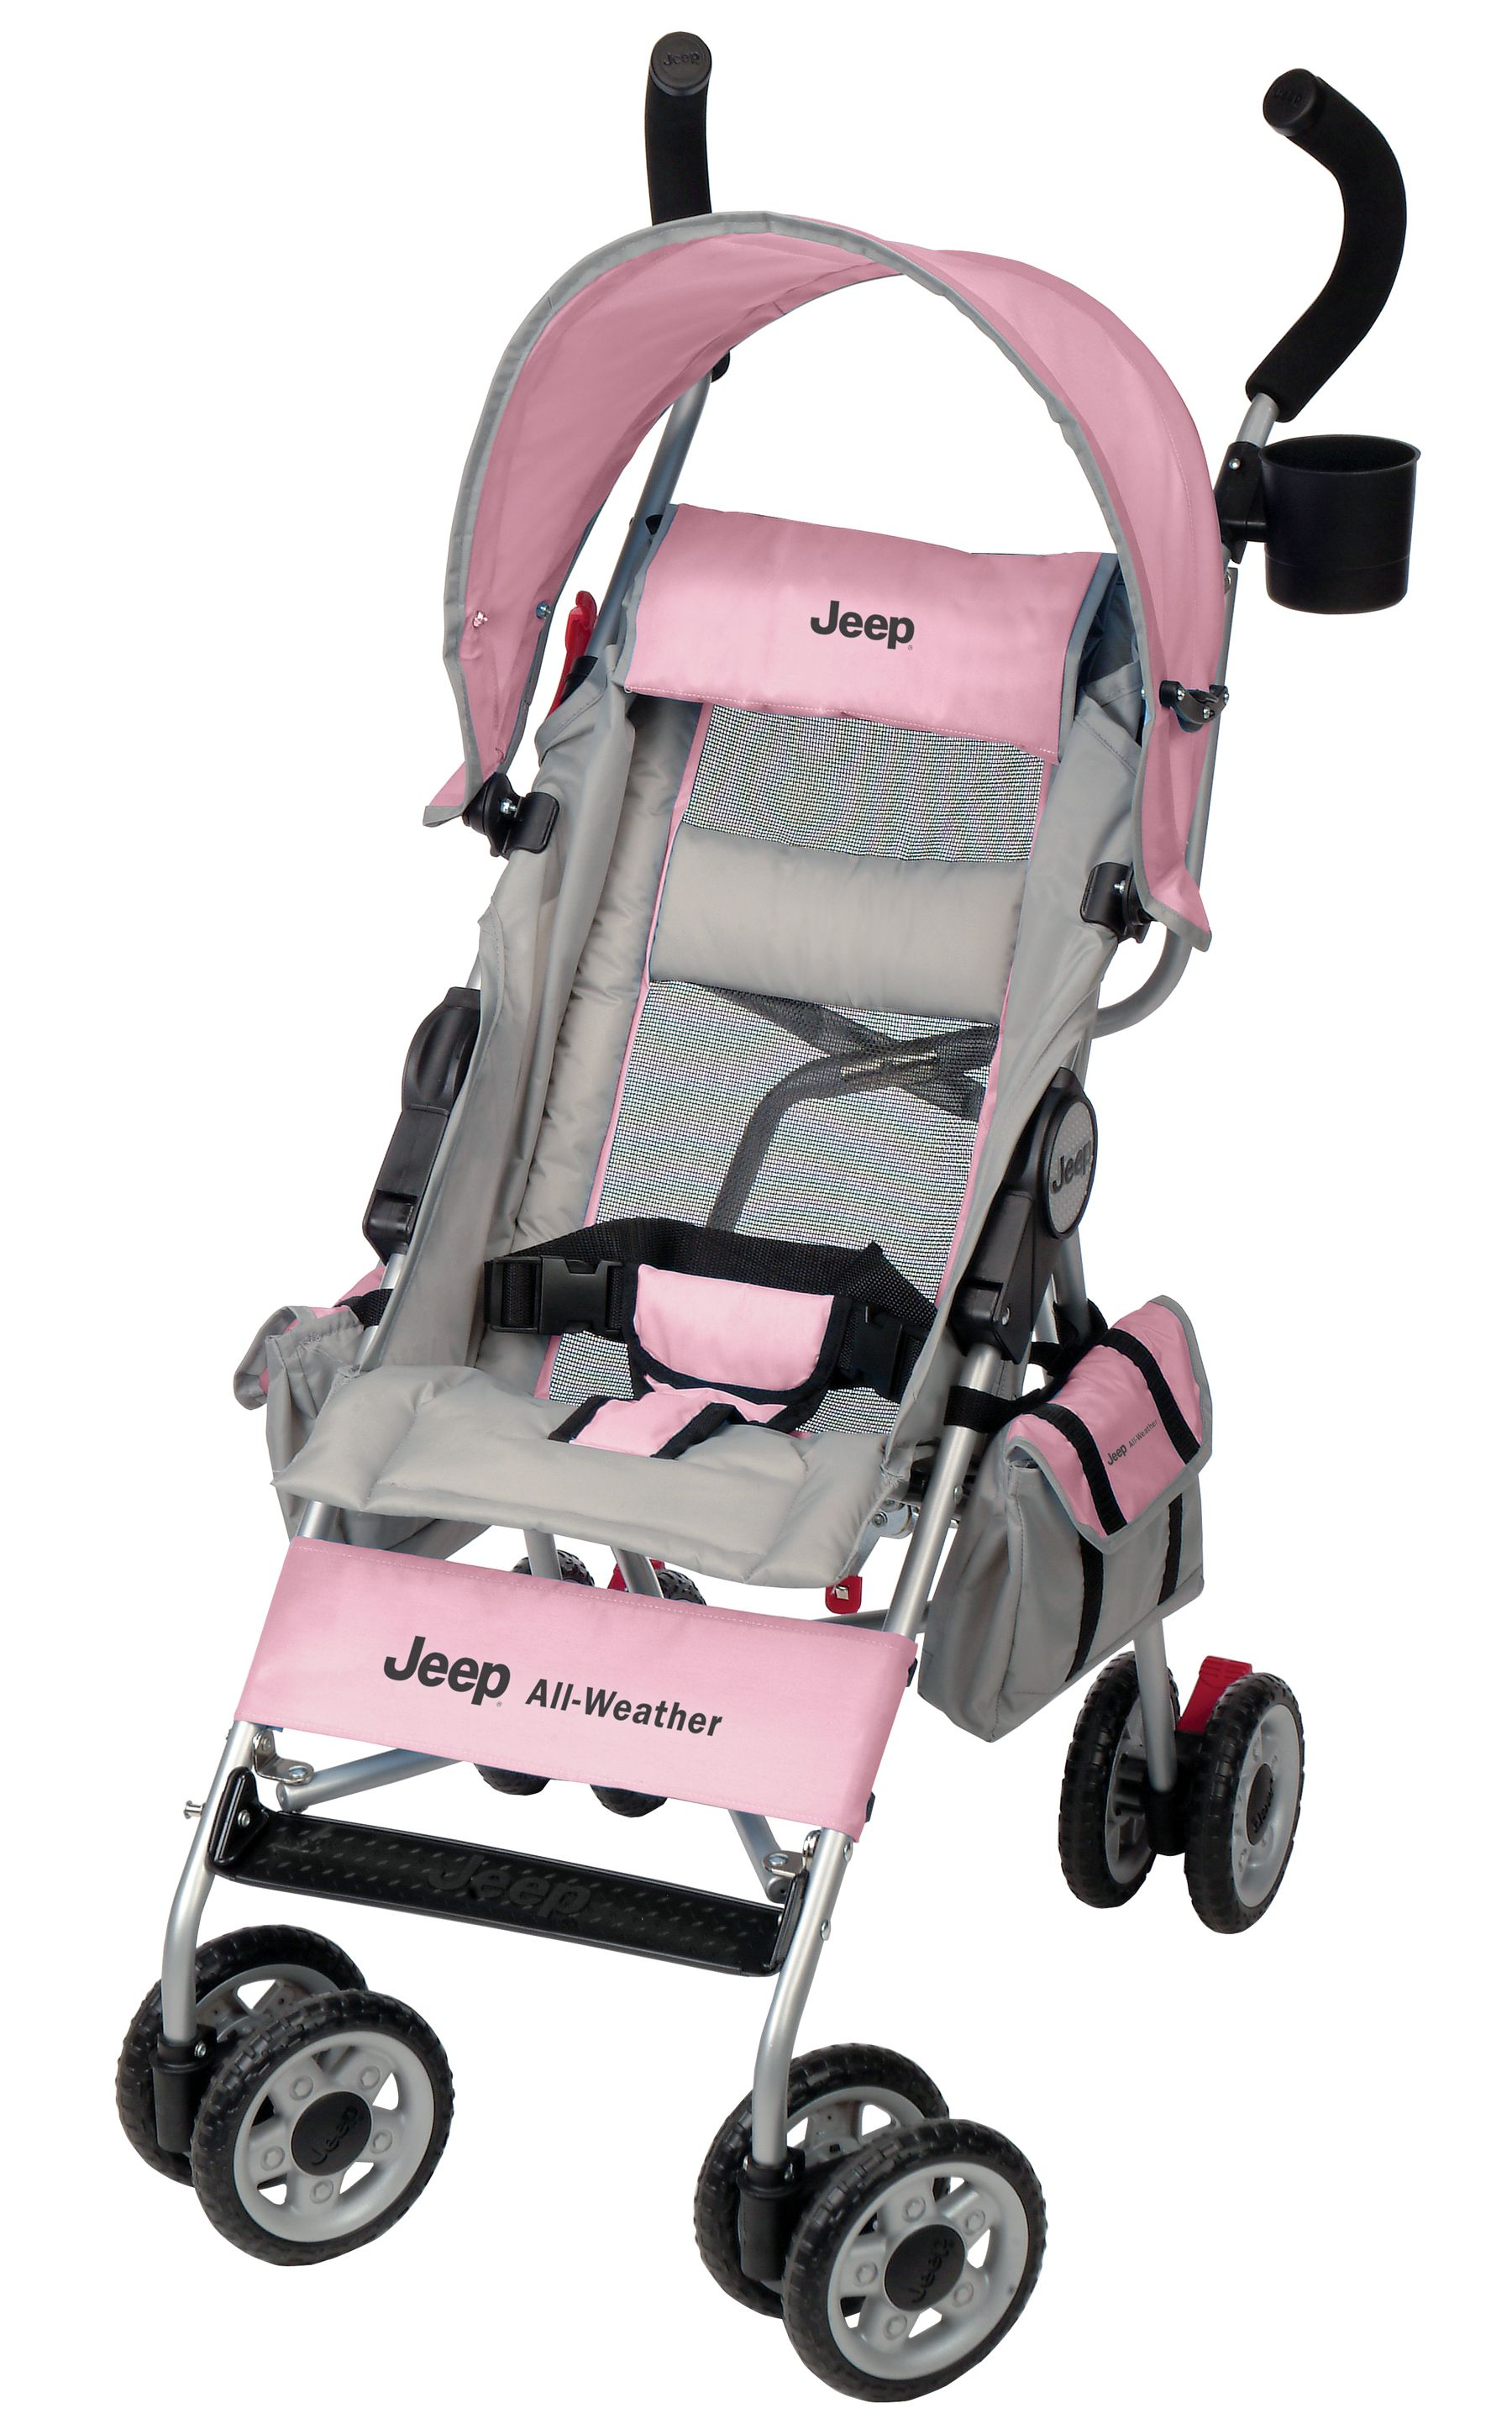 Jeep Wrangler All Weather Umbrella Stroller Pink Features Very light stroller Folds Small Parent